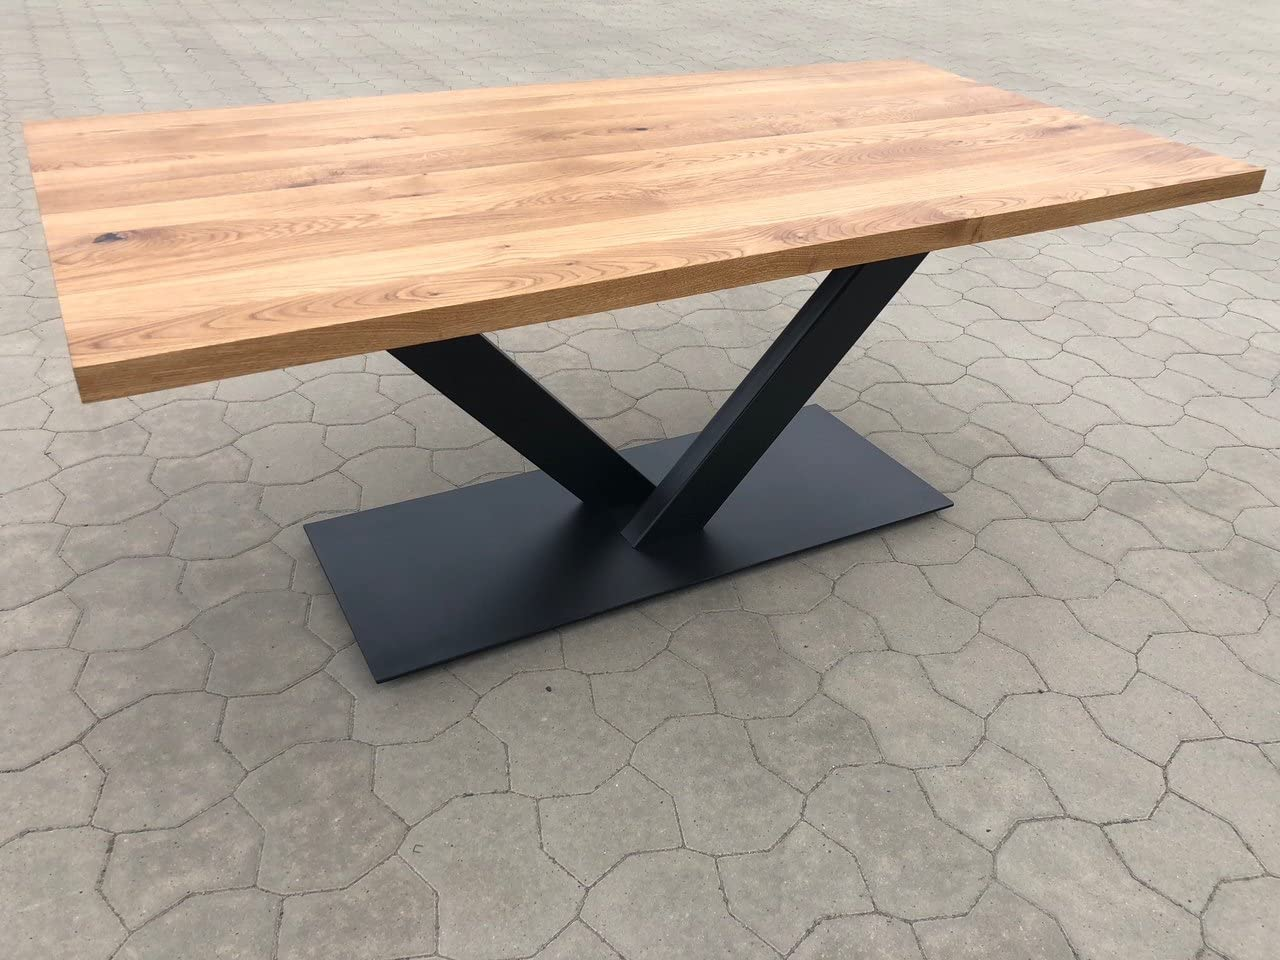 Dining Table Solid Wild Oak Top 9 cm Thick 9 x 9 Genuine 9 cm ...